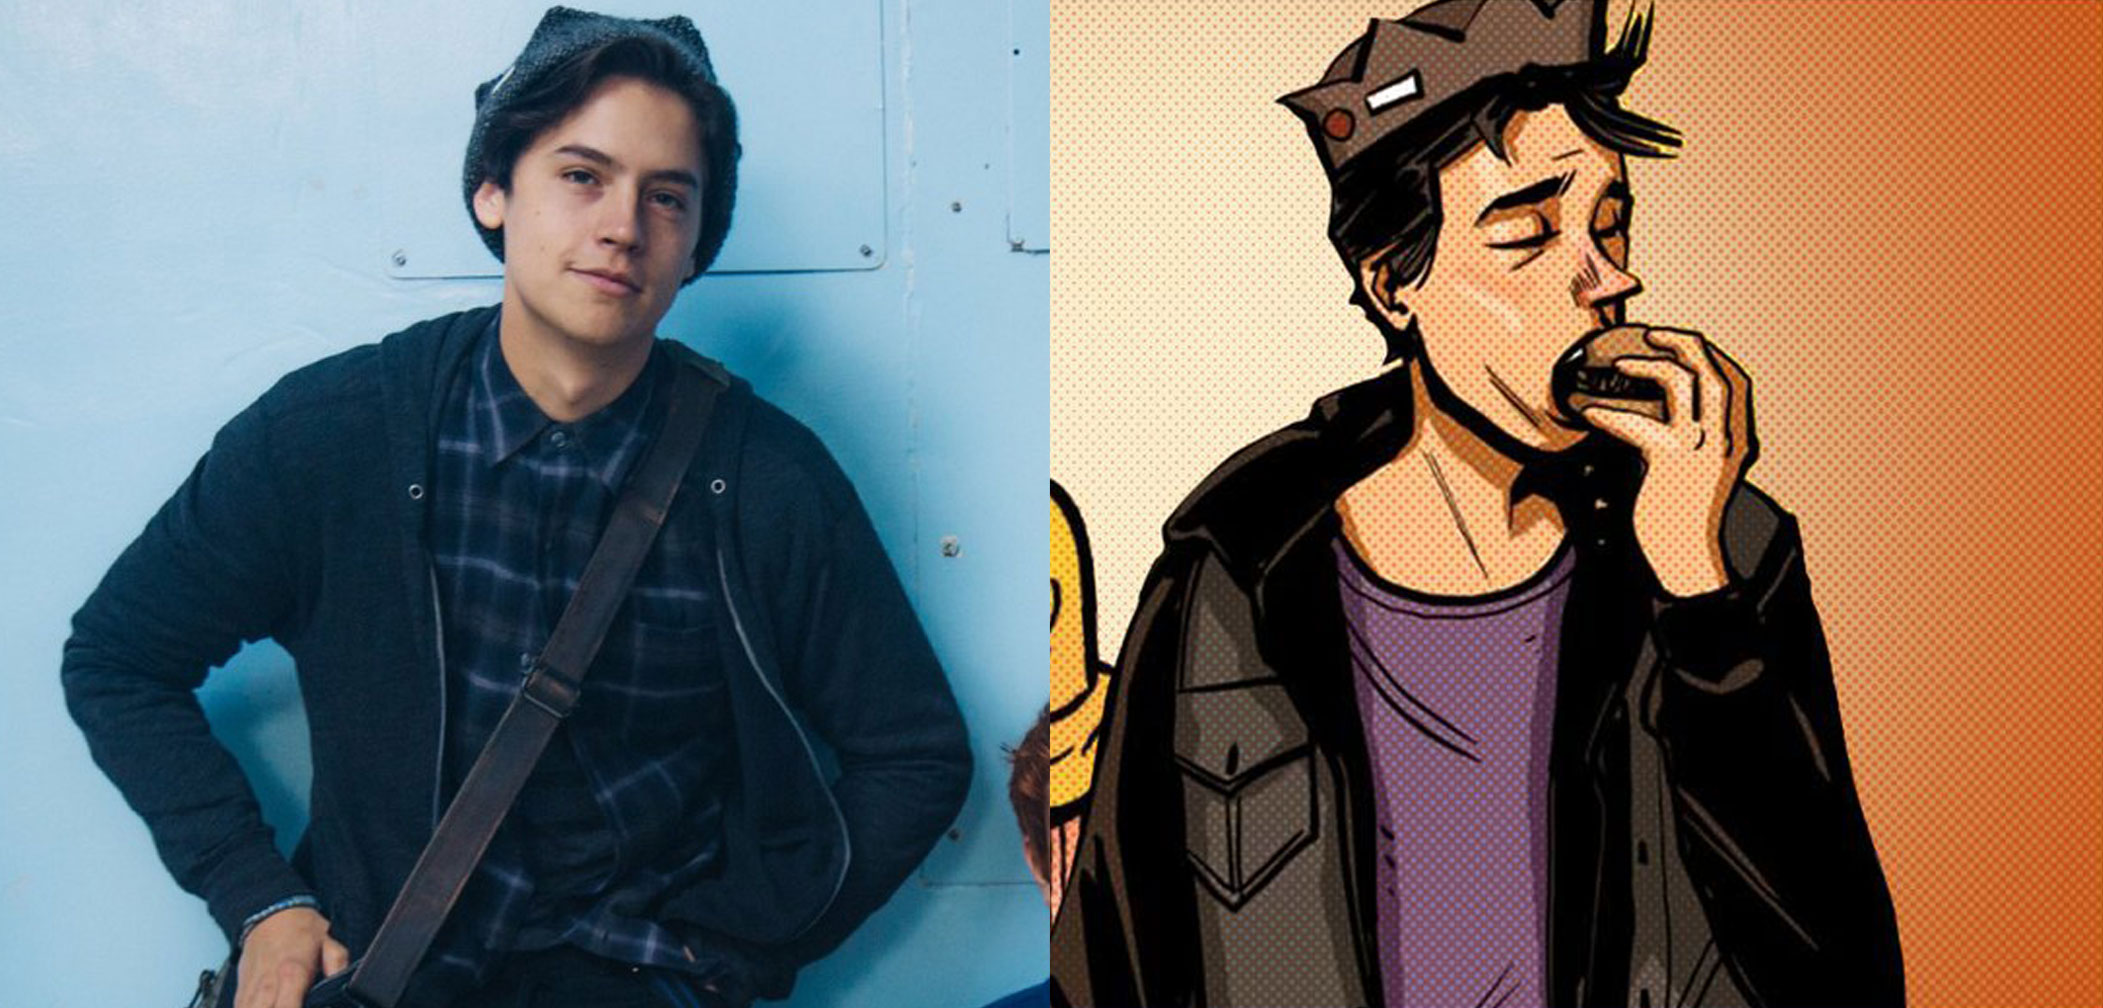 Cole Sprouse, Jughead, Archie, Riverdale, actor, comic books